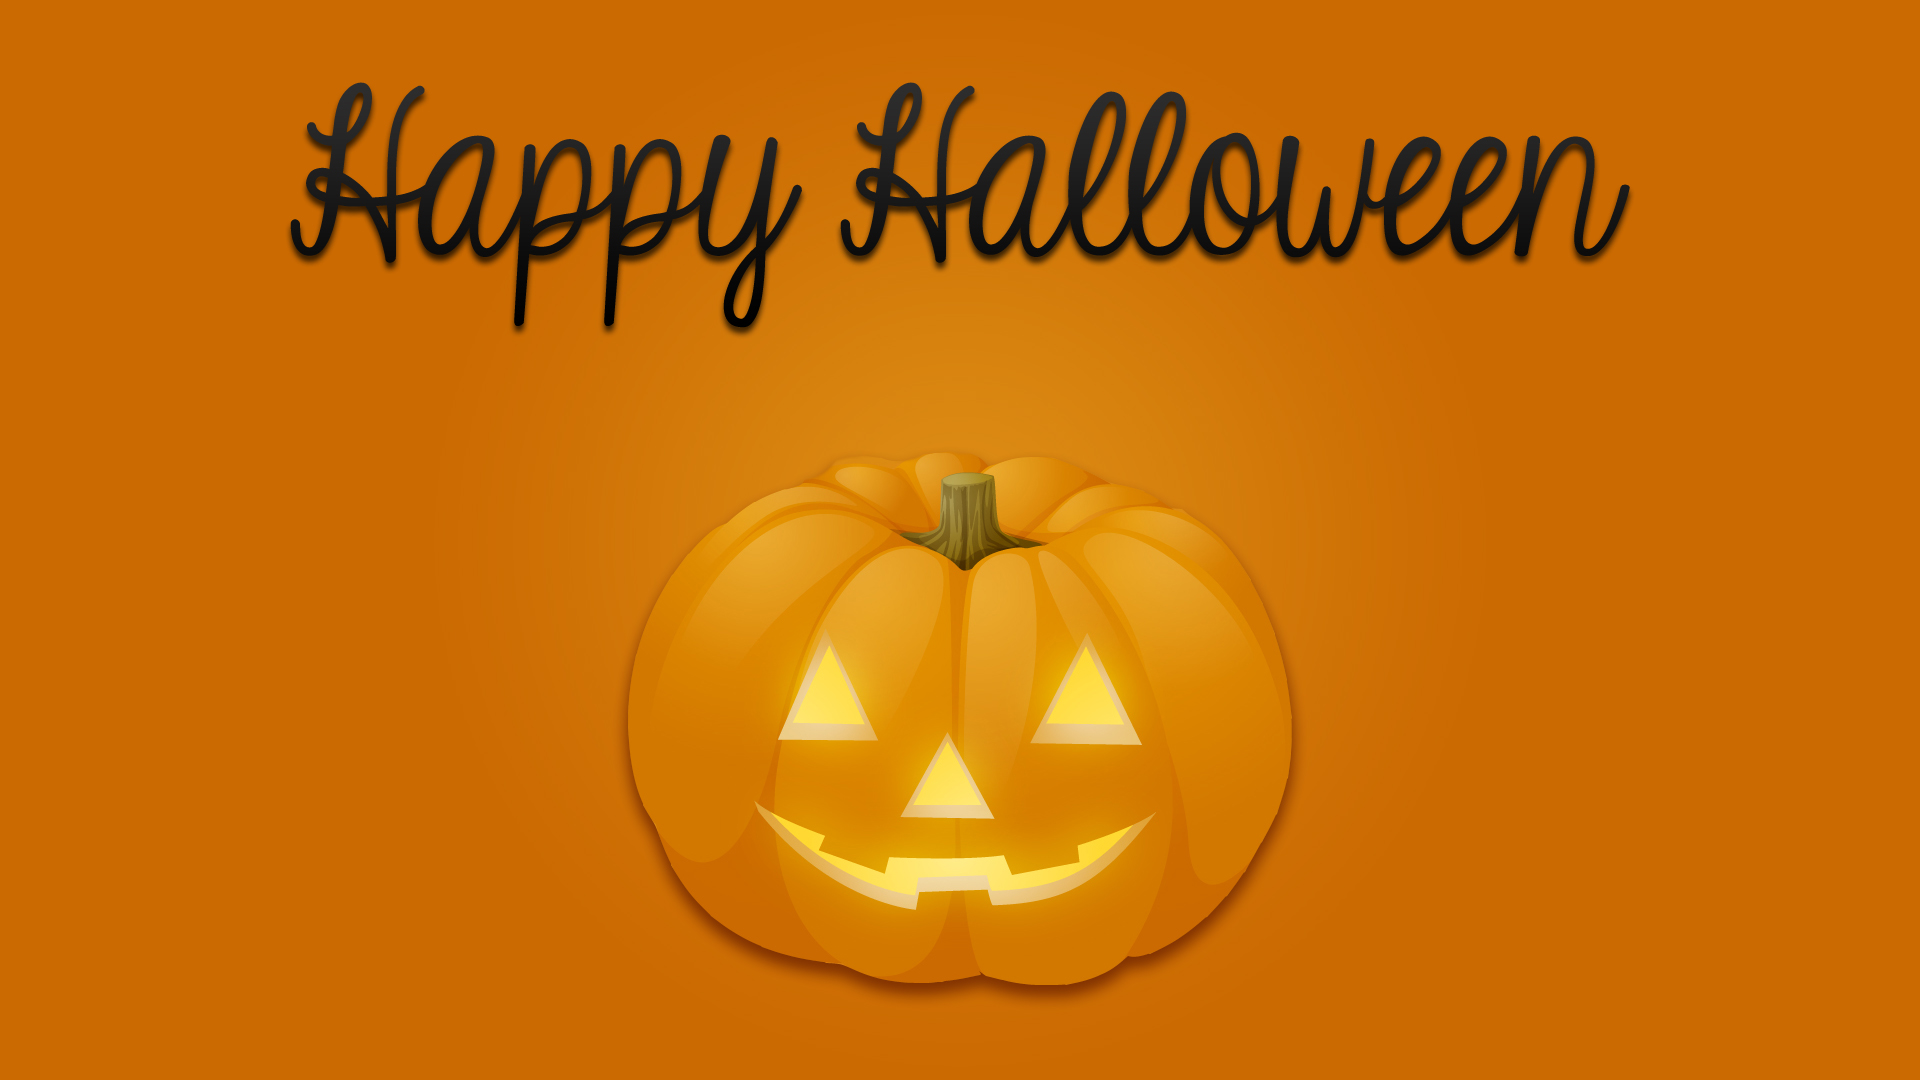 happy_halloween_pumpkin_wallpaper_1920x1080_by_cupcakekitten20-d5gkr17